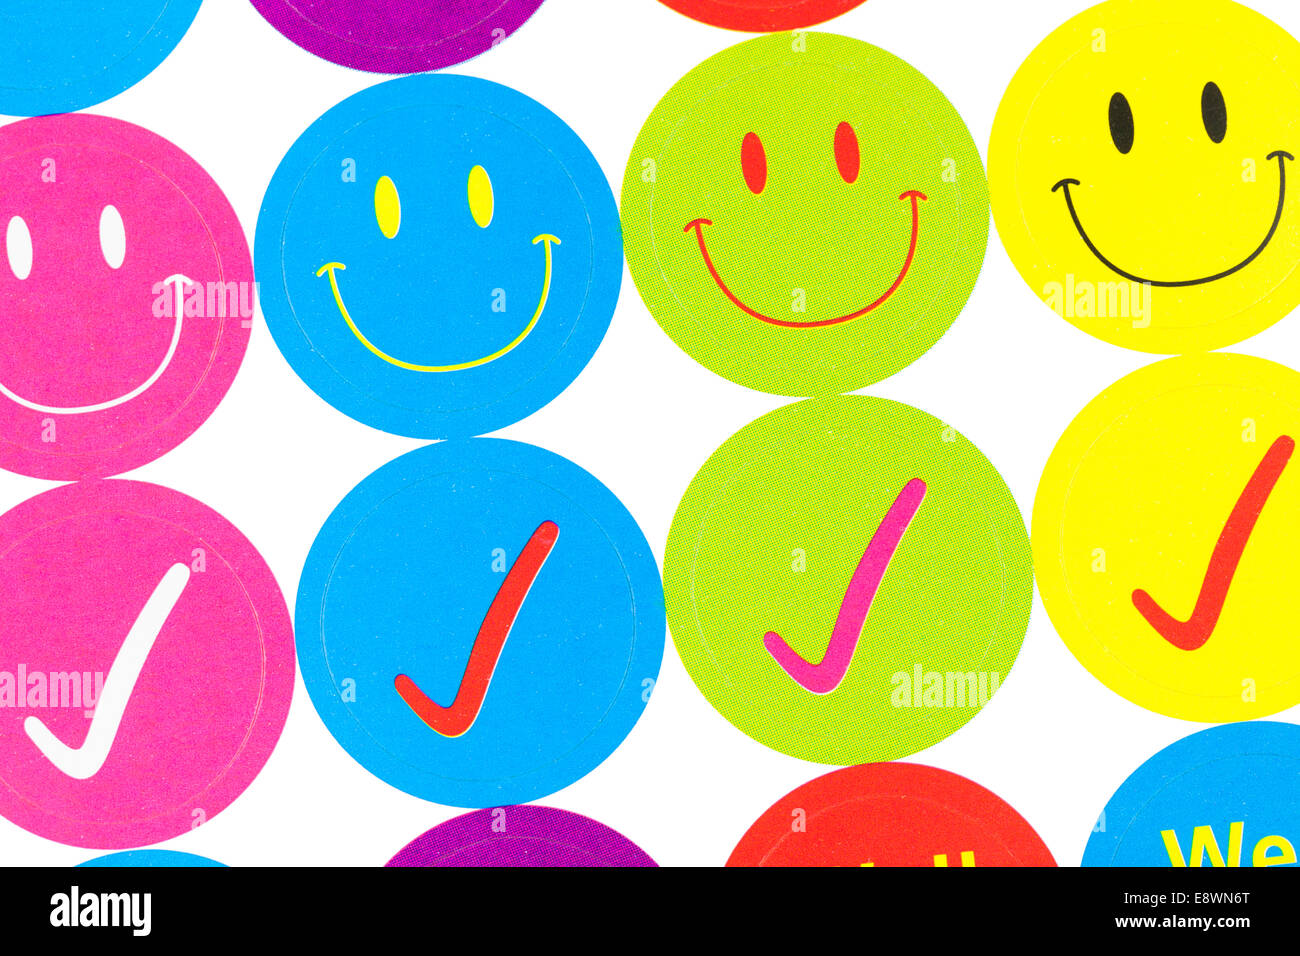 Tick off and smiley stickers - Stock Image